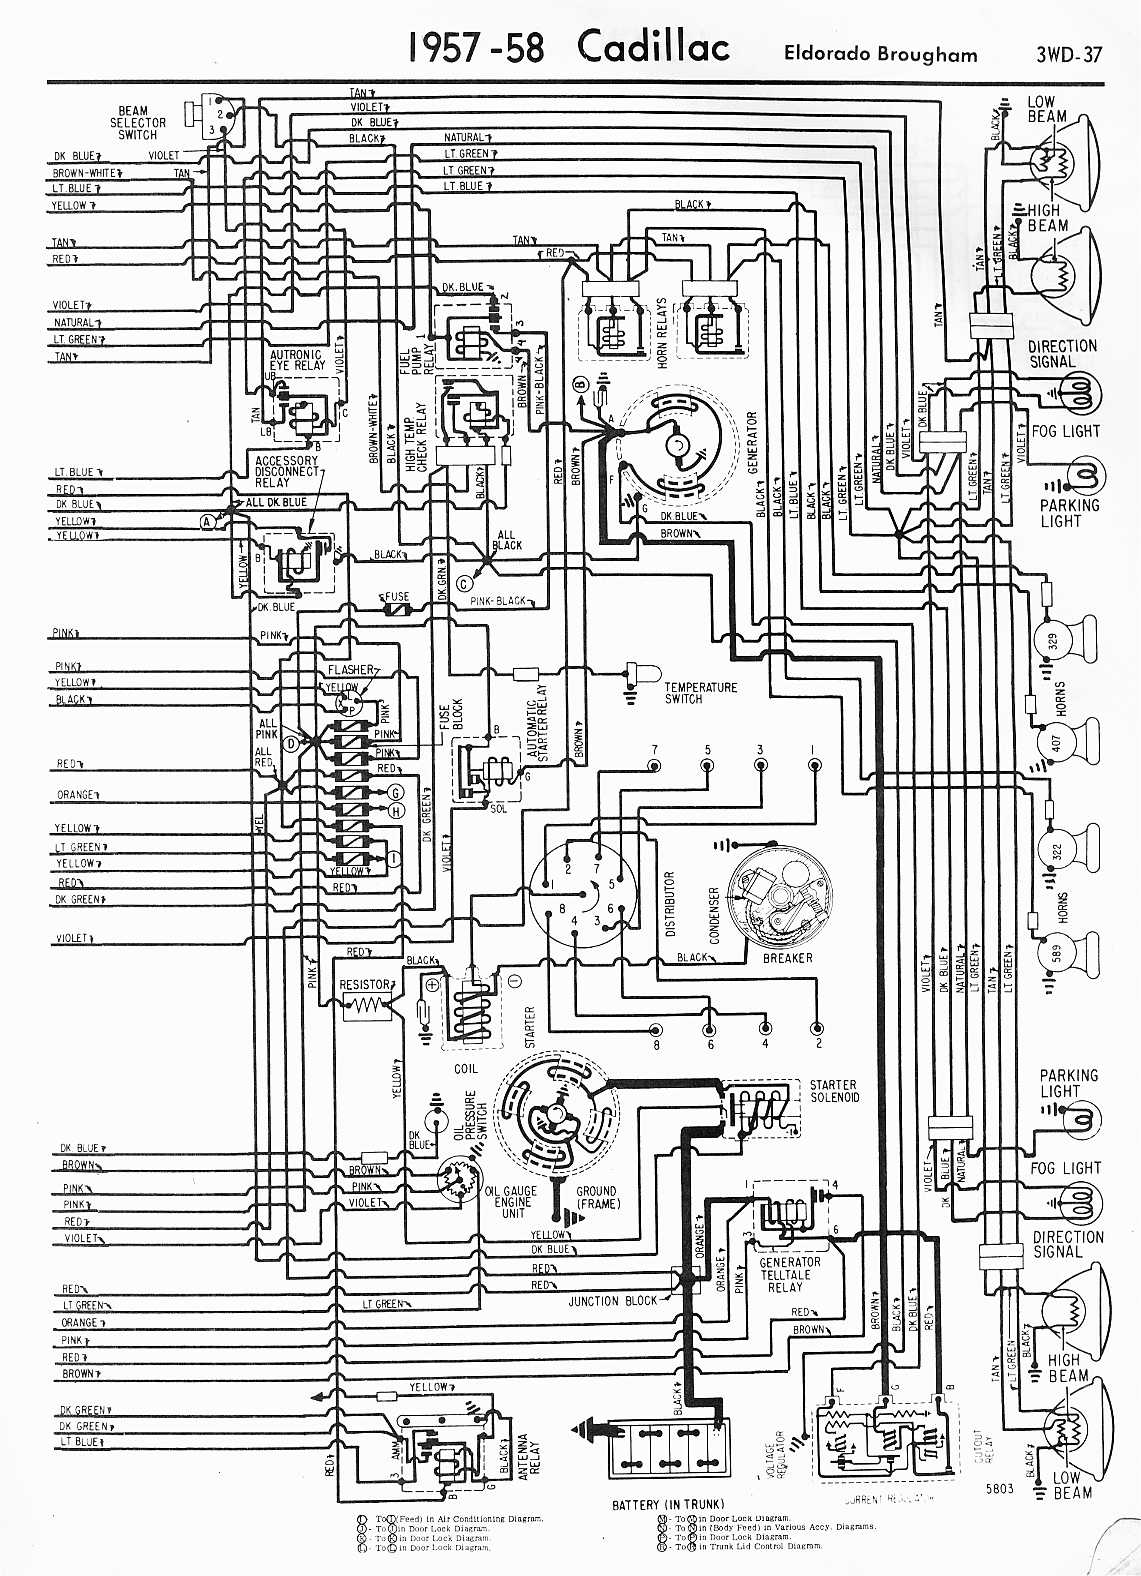 MWireCadi65_3WD 037 cadillac wiring diagrams 1957 1965 1999 cadillac deville wiring diagram at readyjetset.co